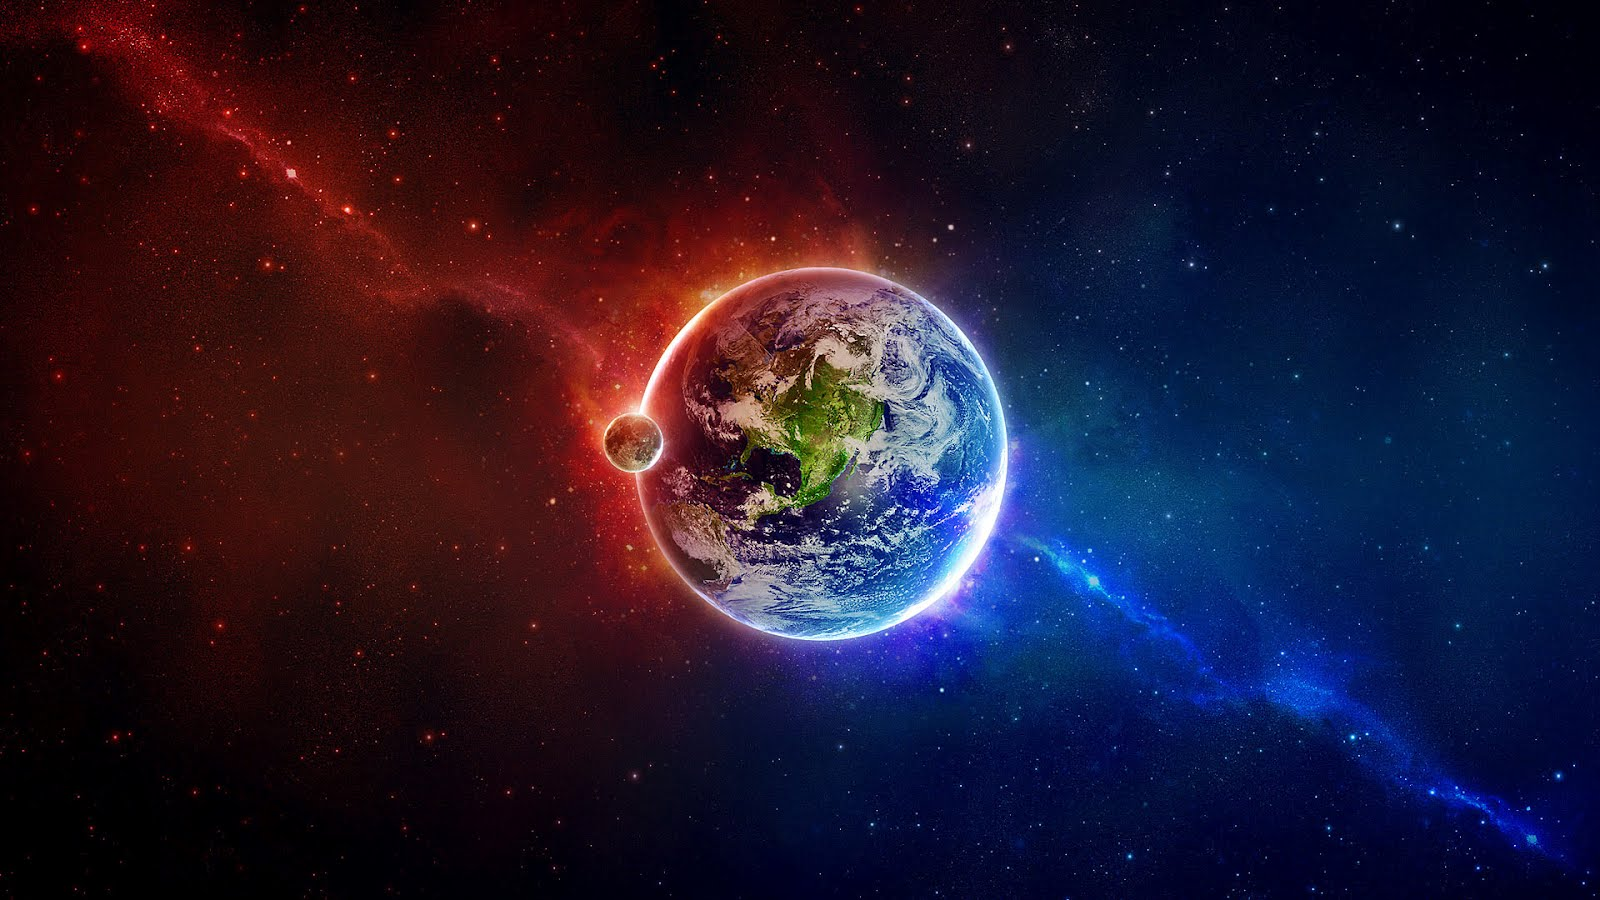 3d wallpapers 3d space scene wallpapers for 3de wallpaper